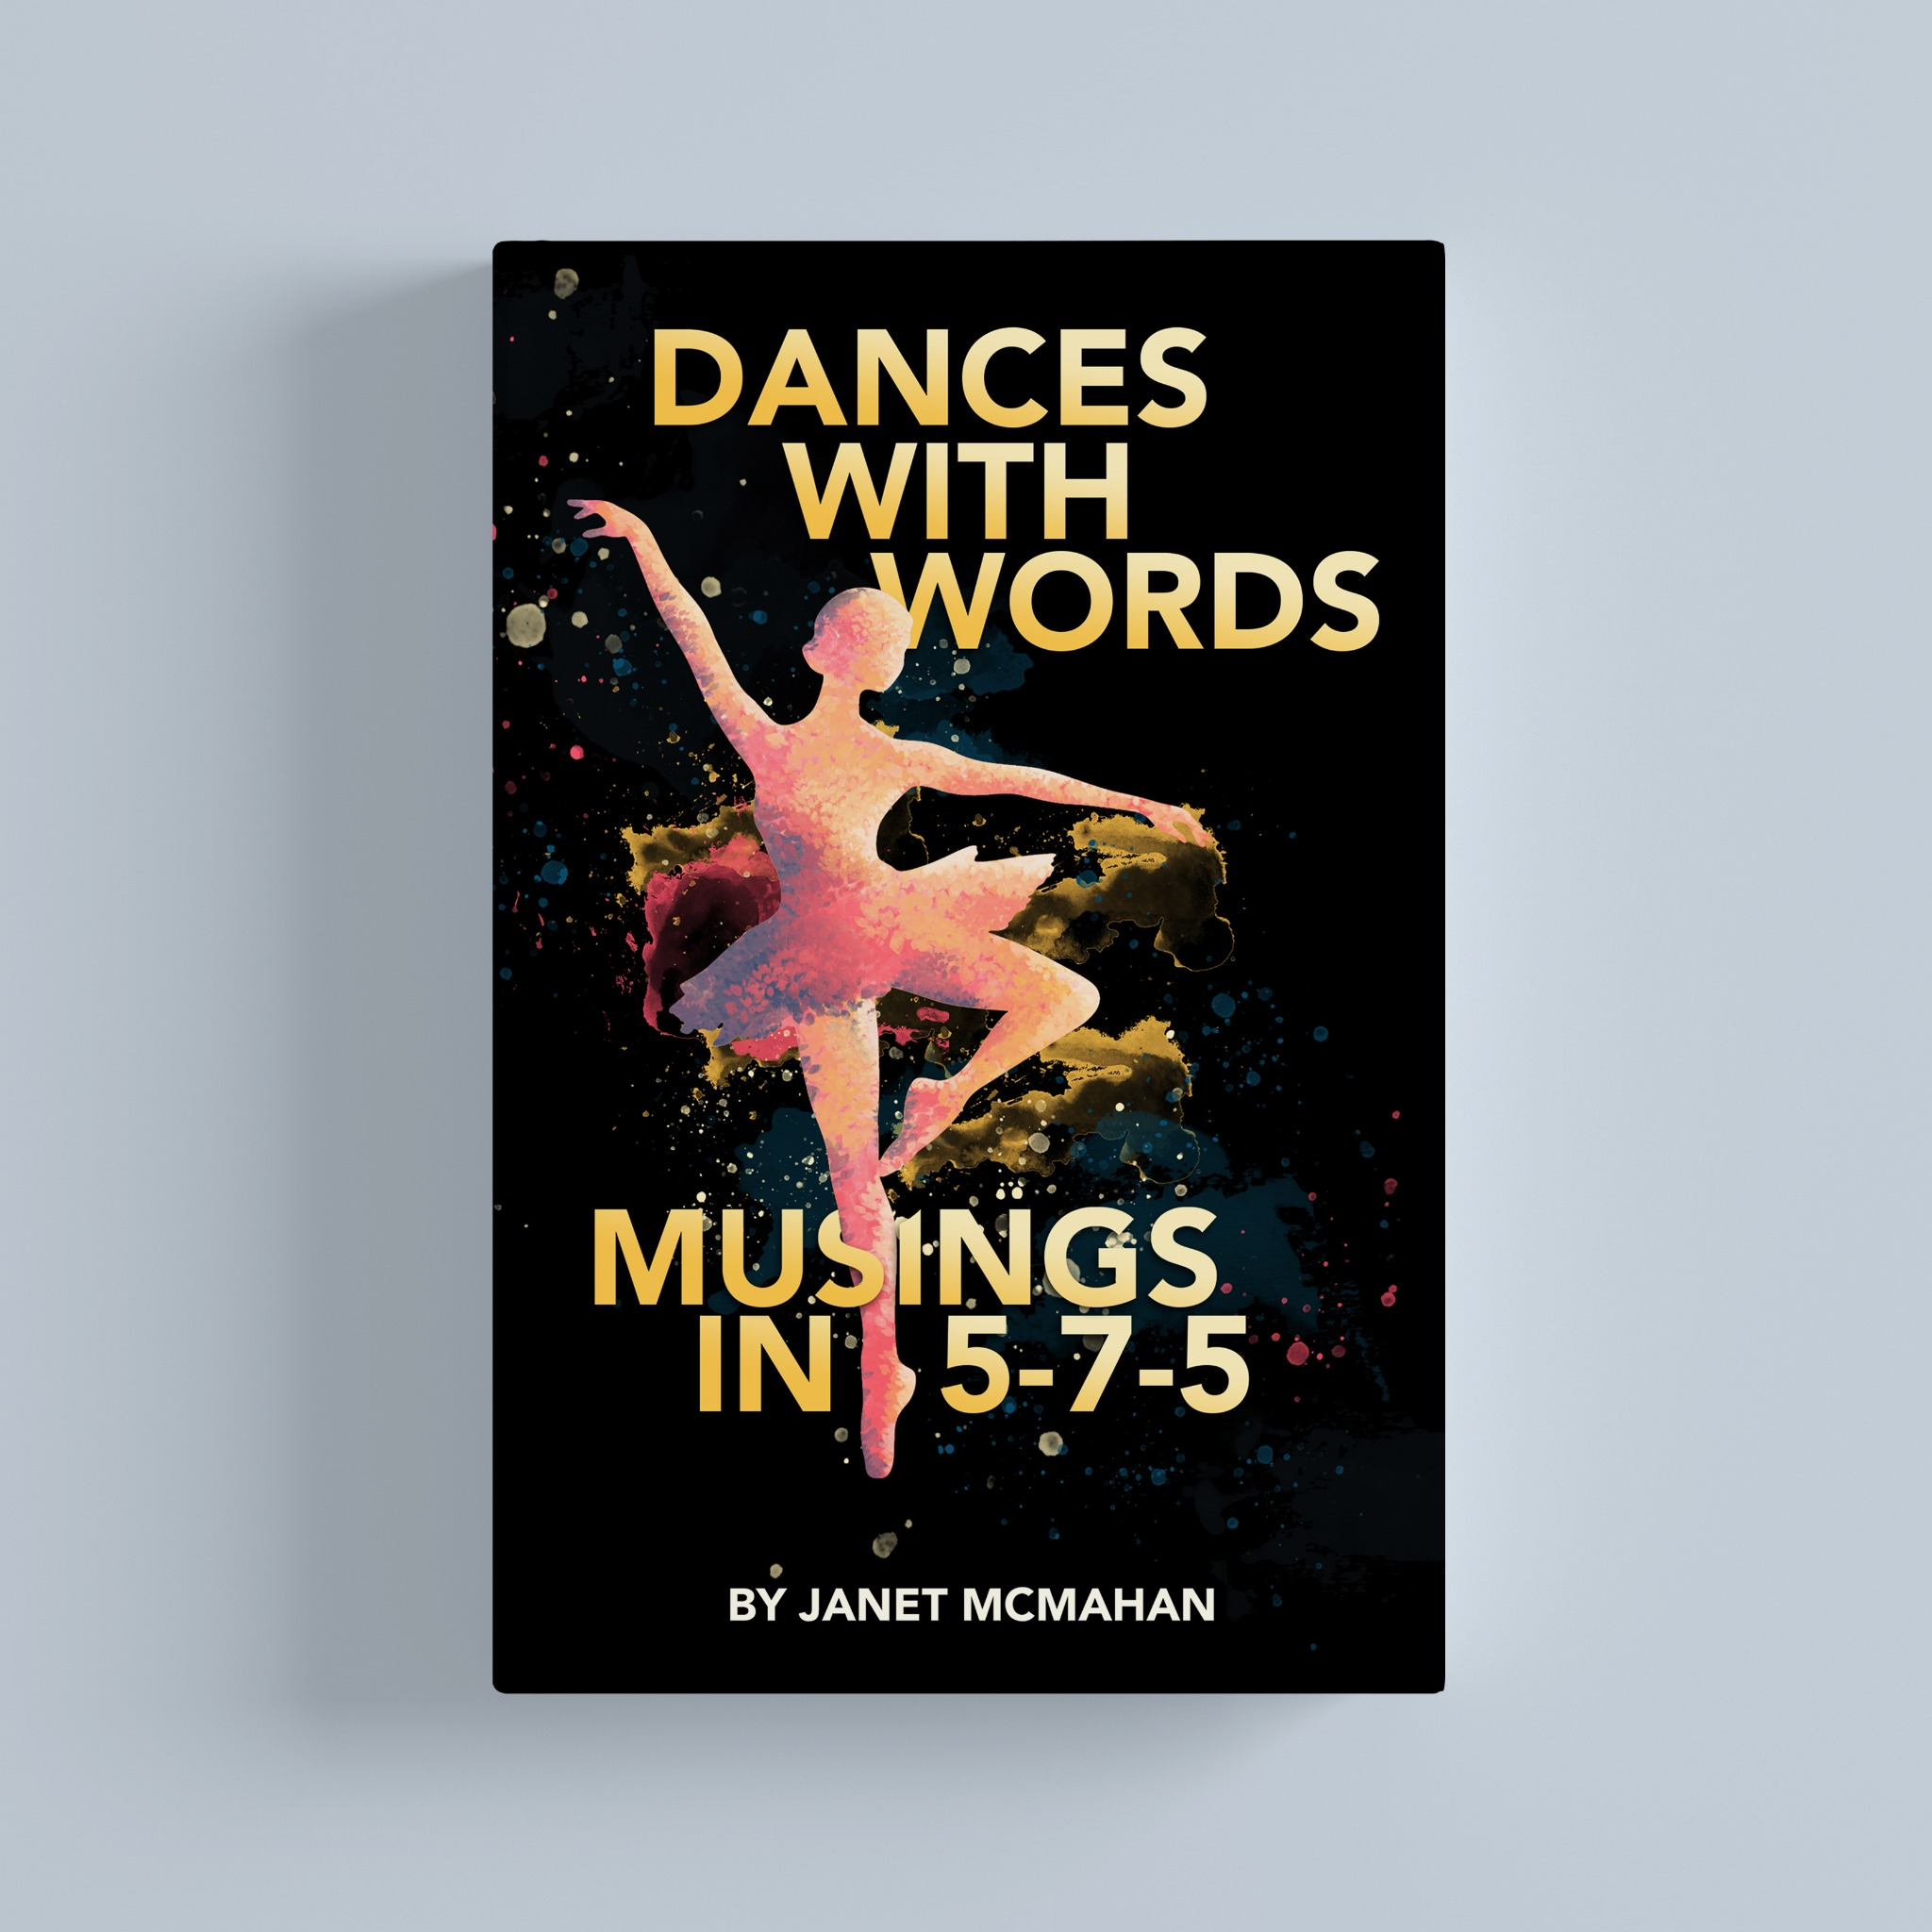 Dances with Words: Musings in 5-7-5